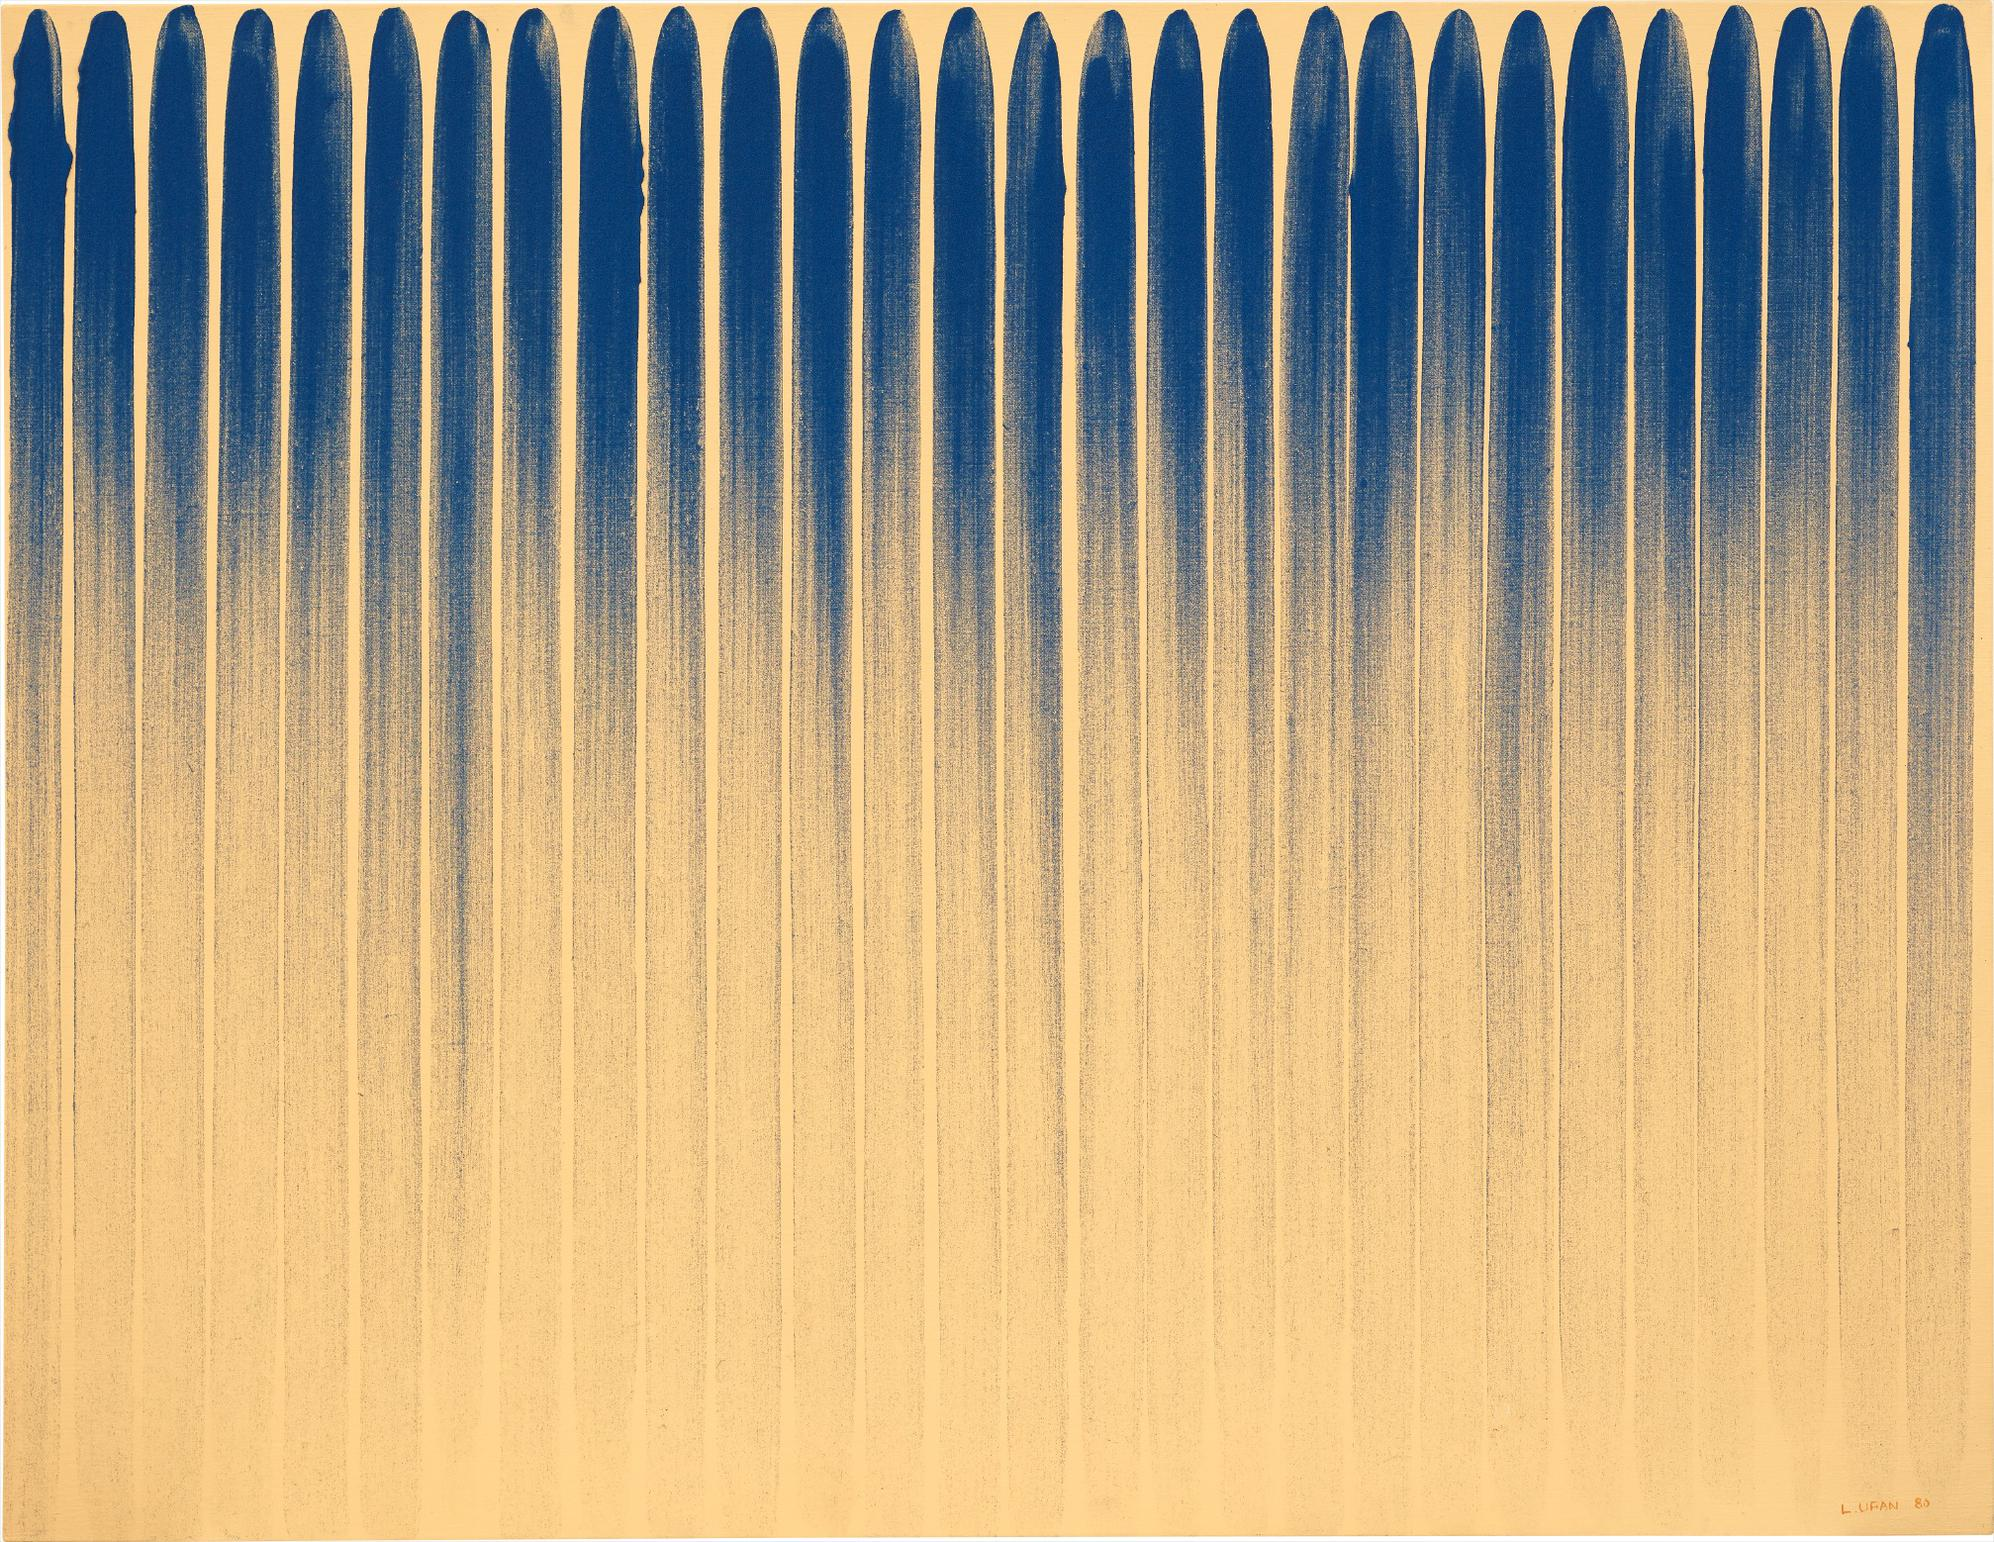 Lee Ufan-From Line No. 800139-1980